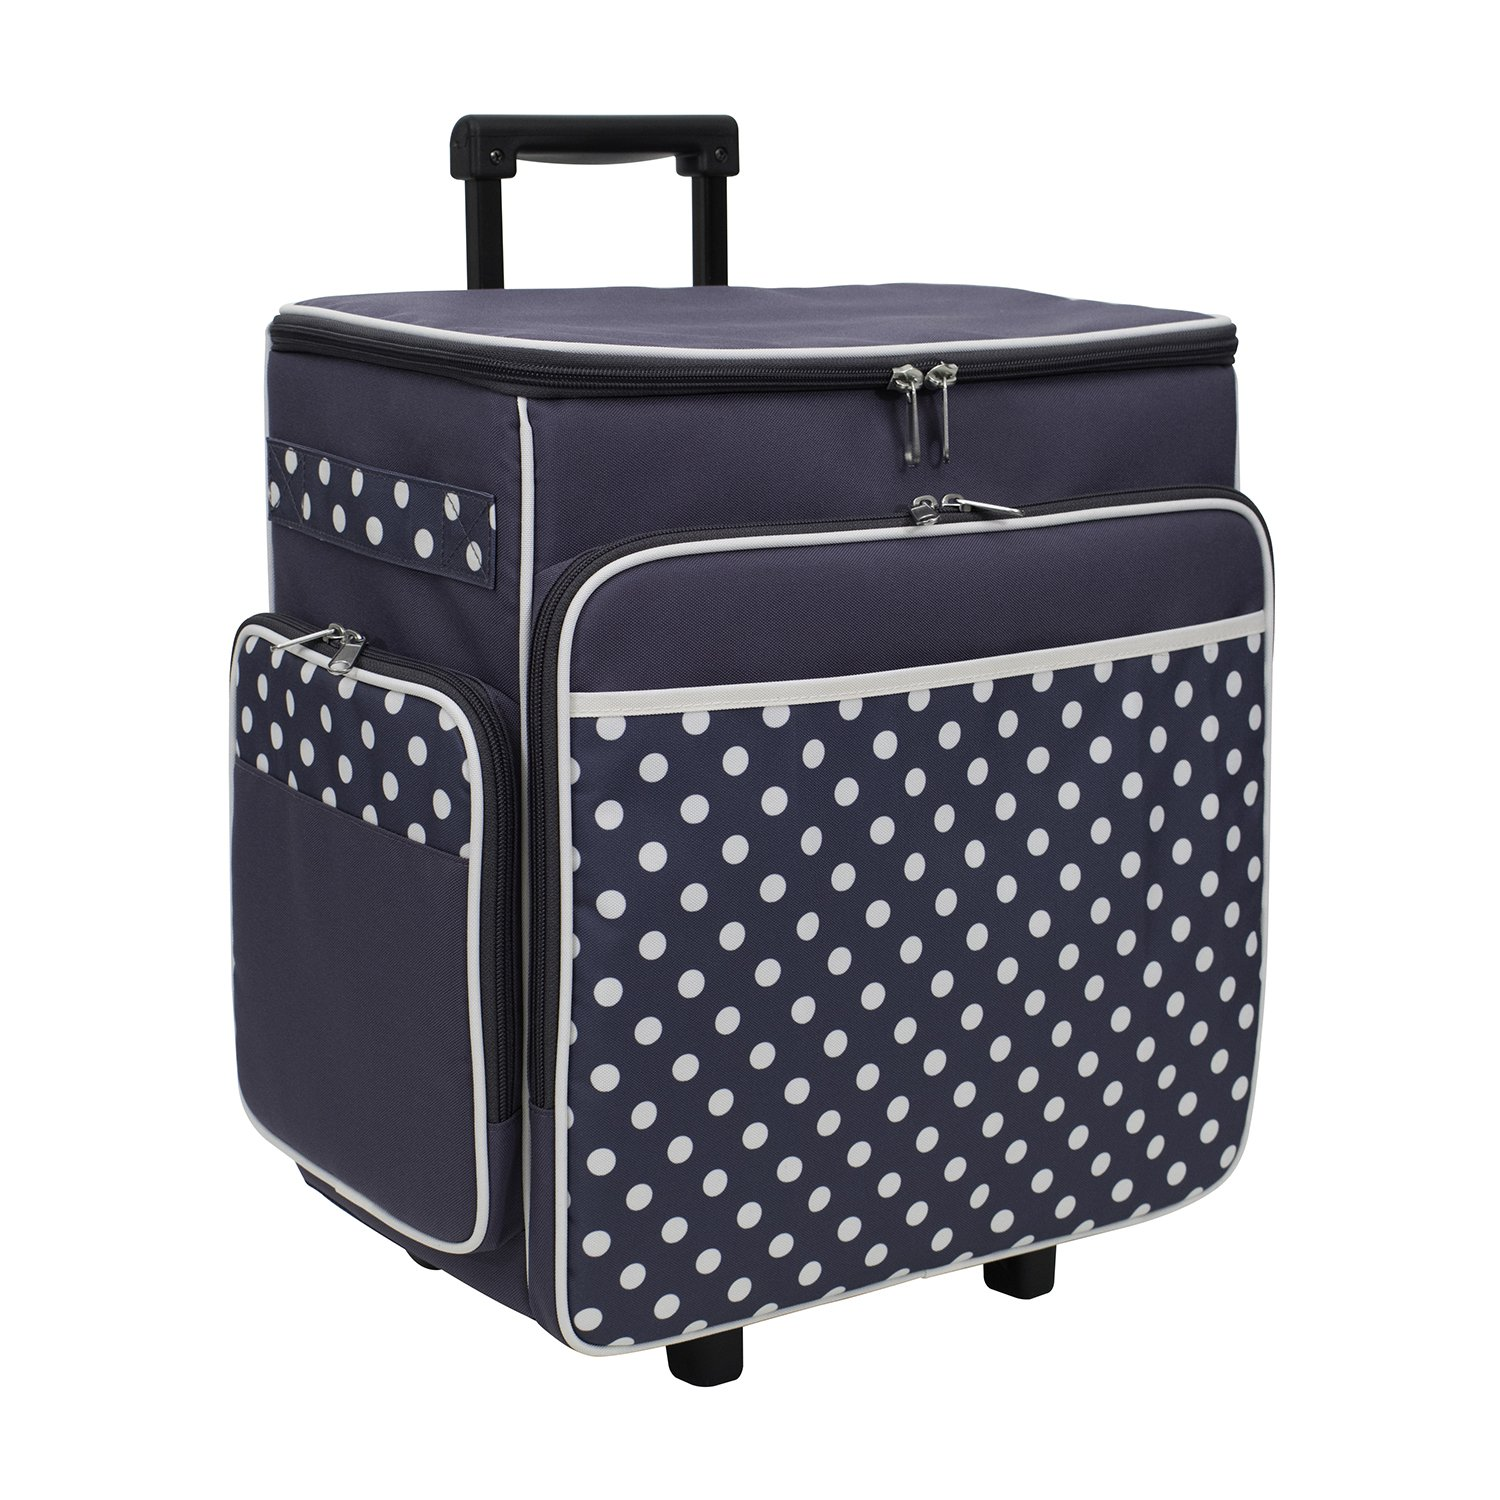 f6f396b84ef6 Get Quotations · Everything Mary Grey Polka Dot Rolling Scrapbook Storage  Tote - Scrapbooking Storage Case for Rings